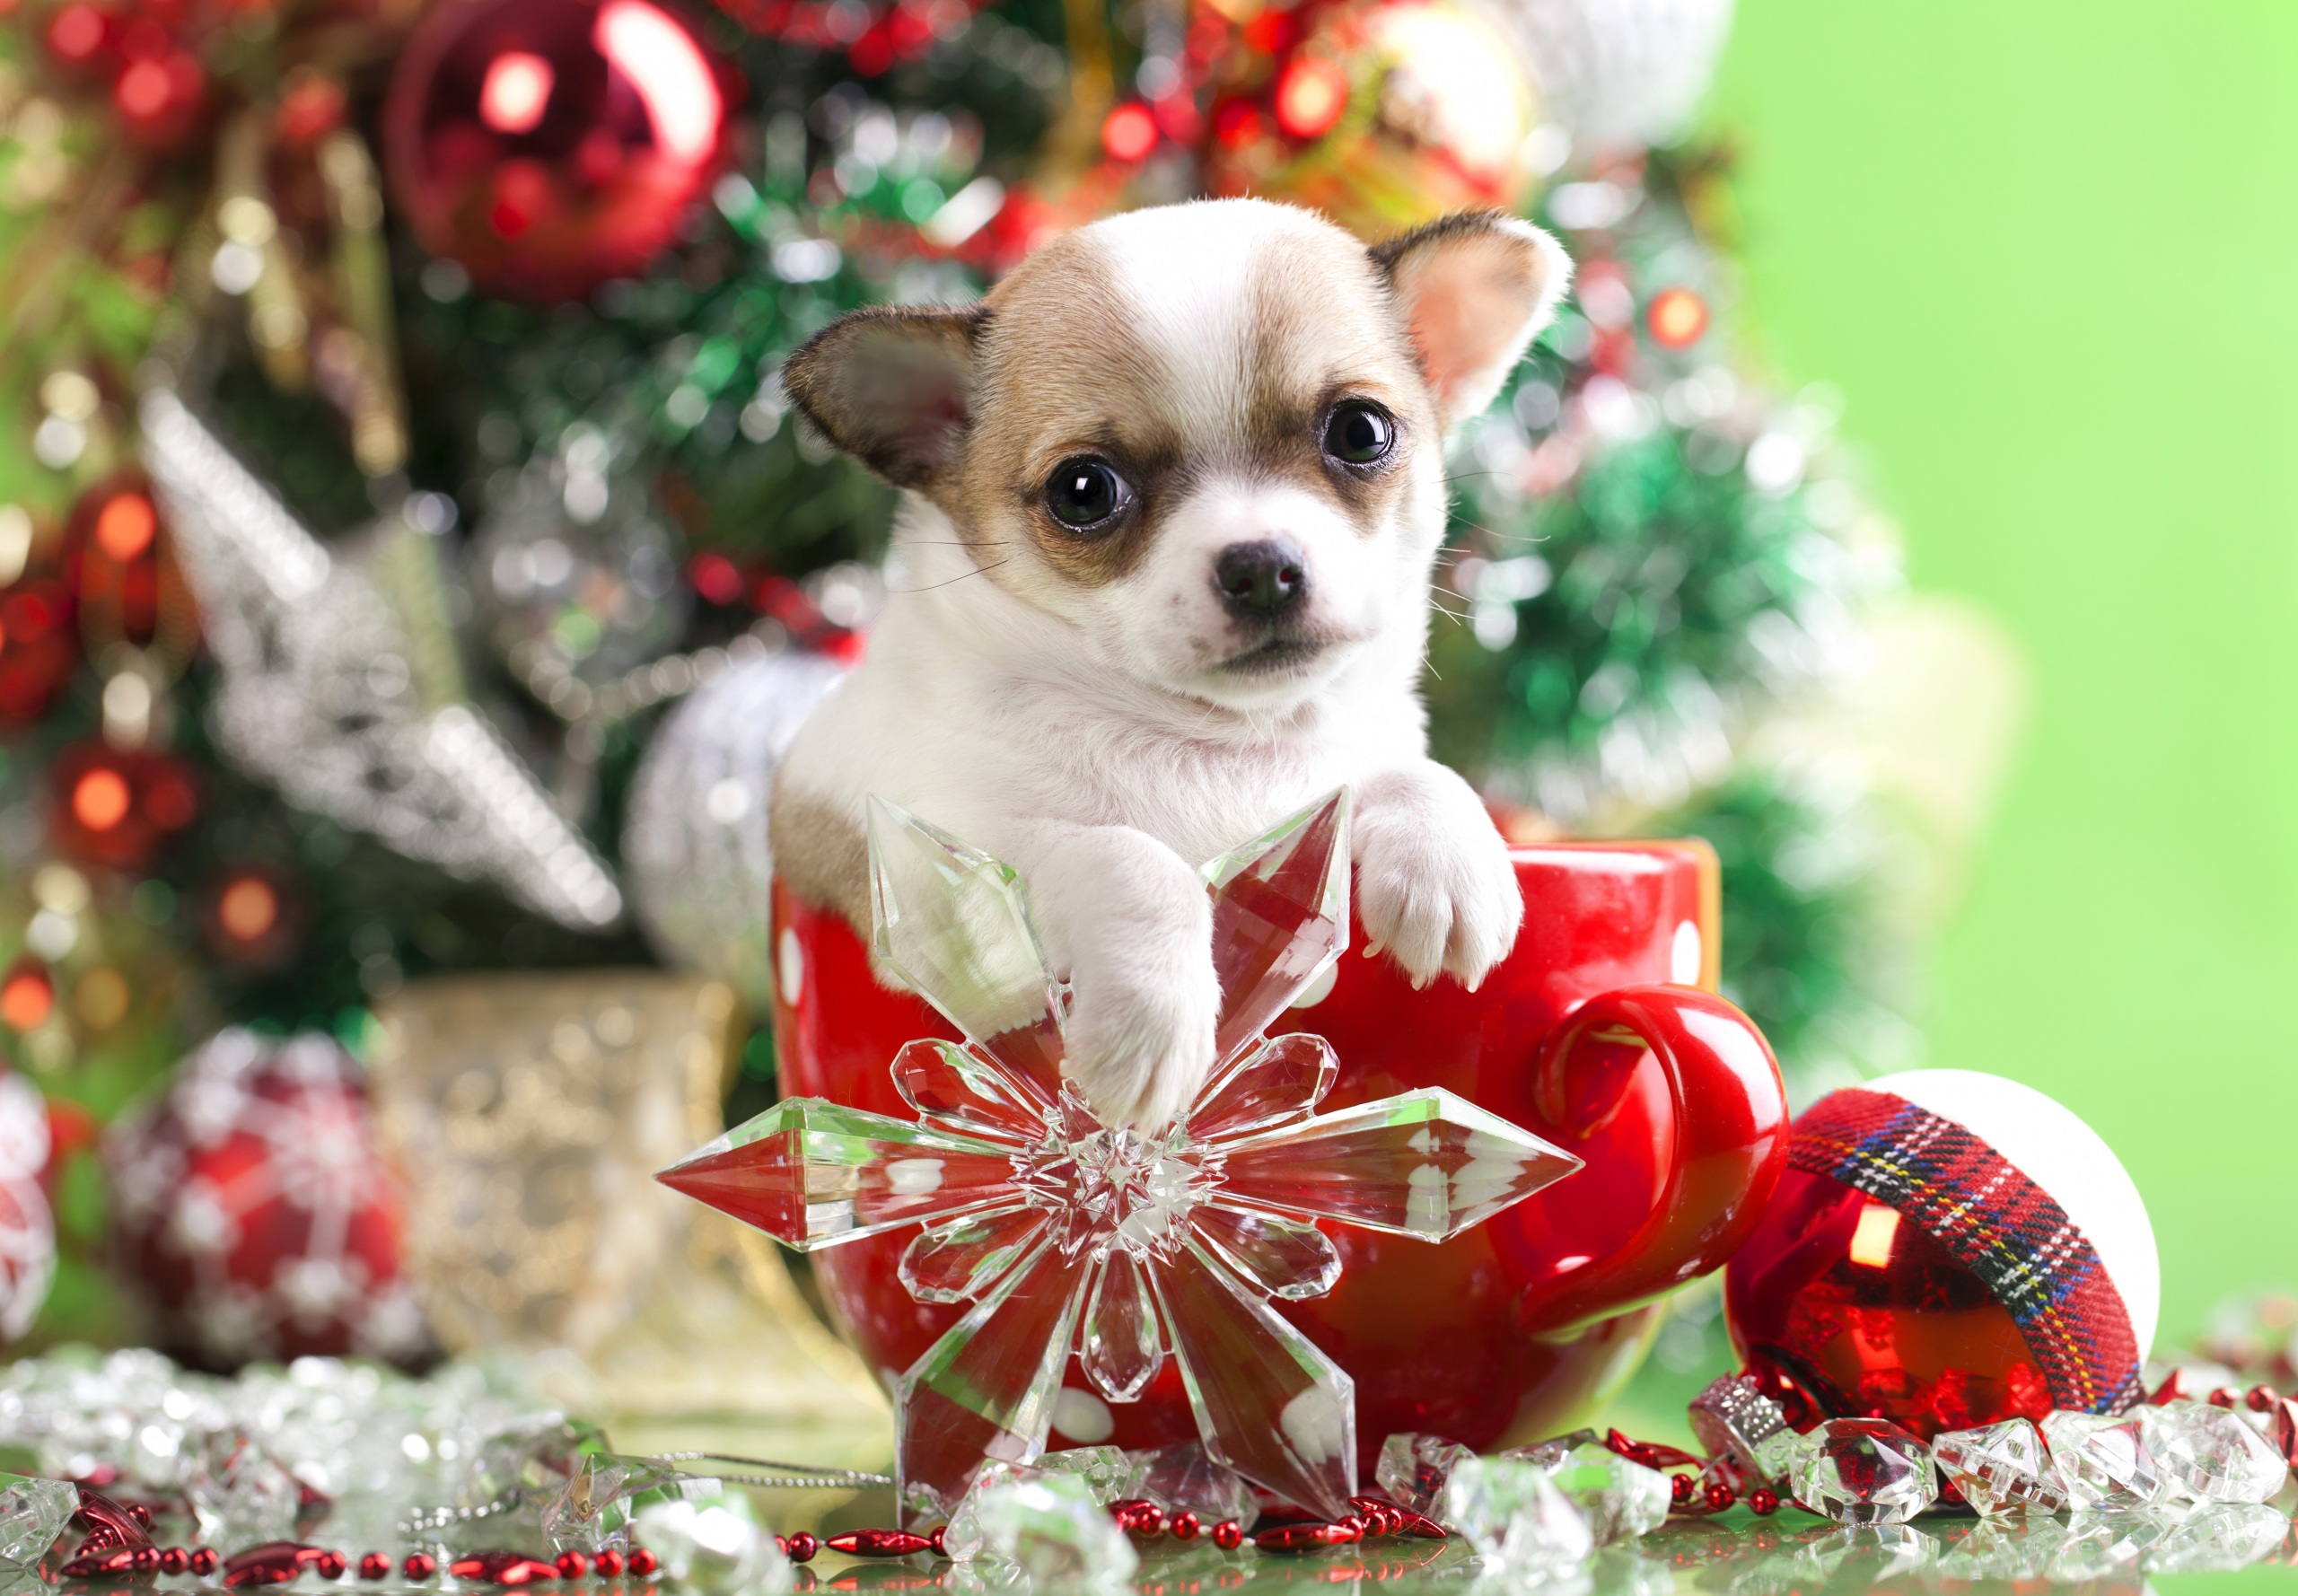 Dogs_Christmas_Chihuahua_458013